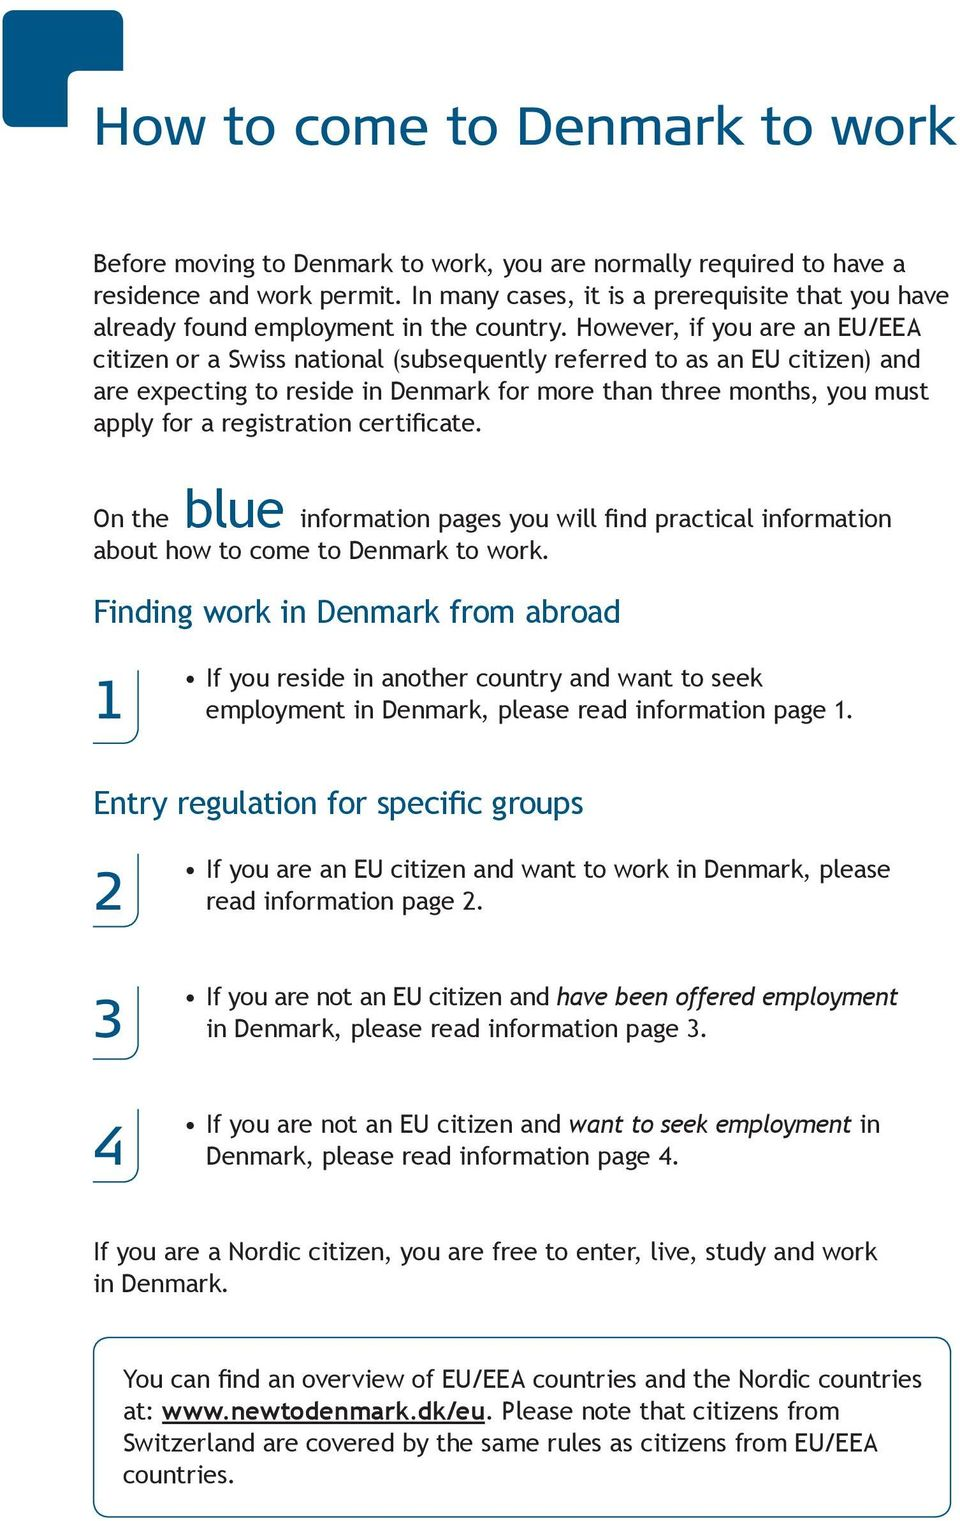 However, if you are an EU/EEA citizen or a Swiss national (subsequently referred to as an EU citizen) and are expecting to reside in Denmark for more than three months, you must apply for a